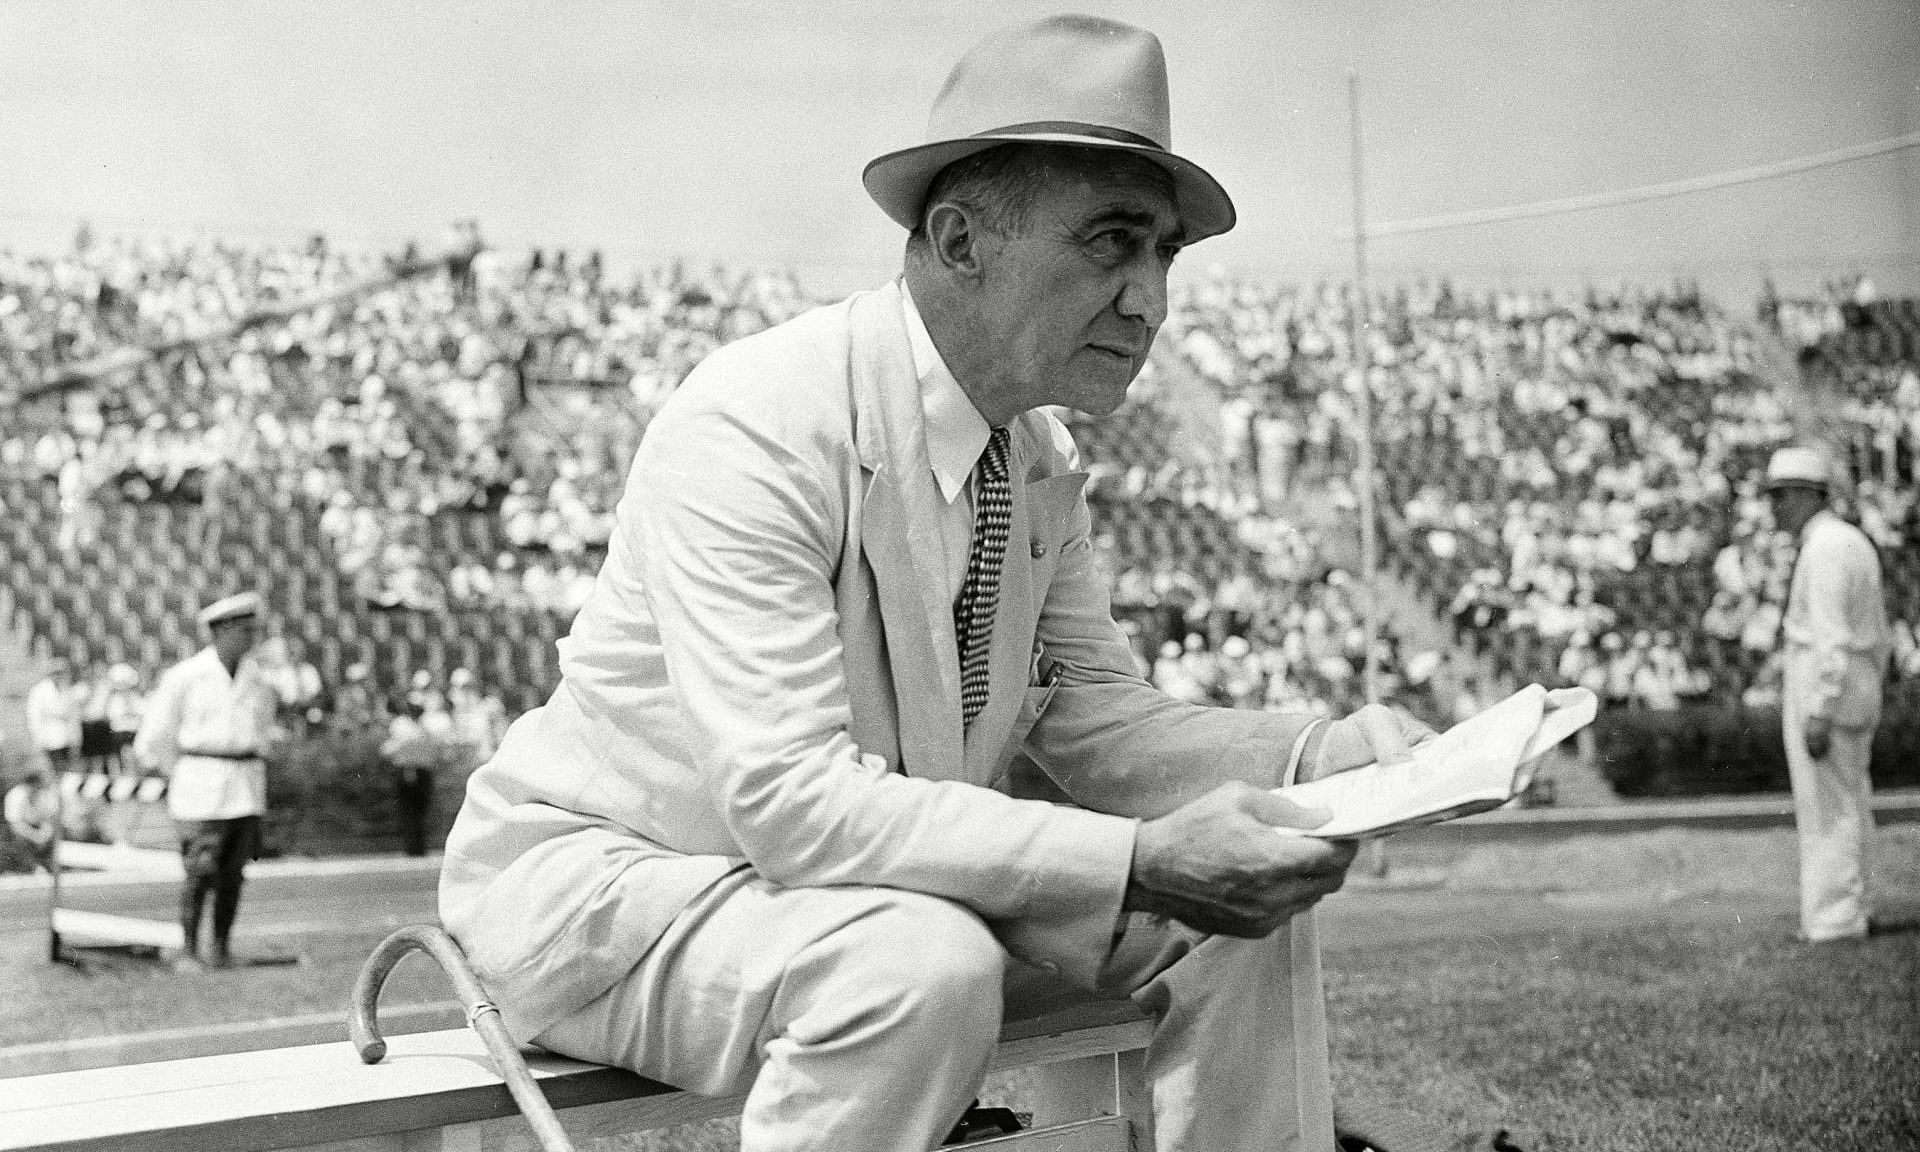 Coach Lawson Robertson of the United States Olympic team as he watches one of the field events in the final Olympic tryouts in New York City.